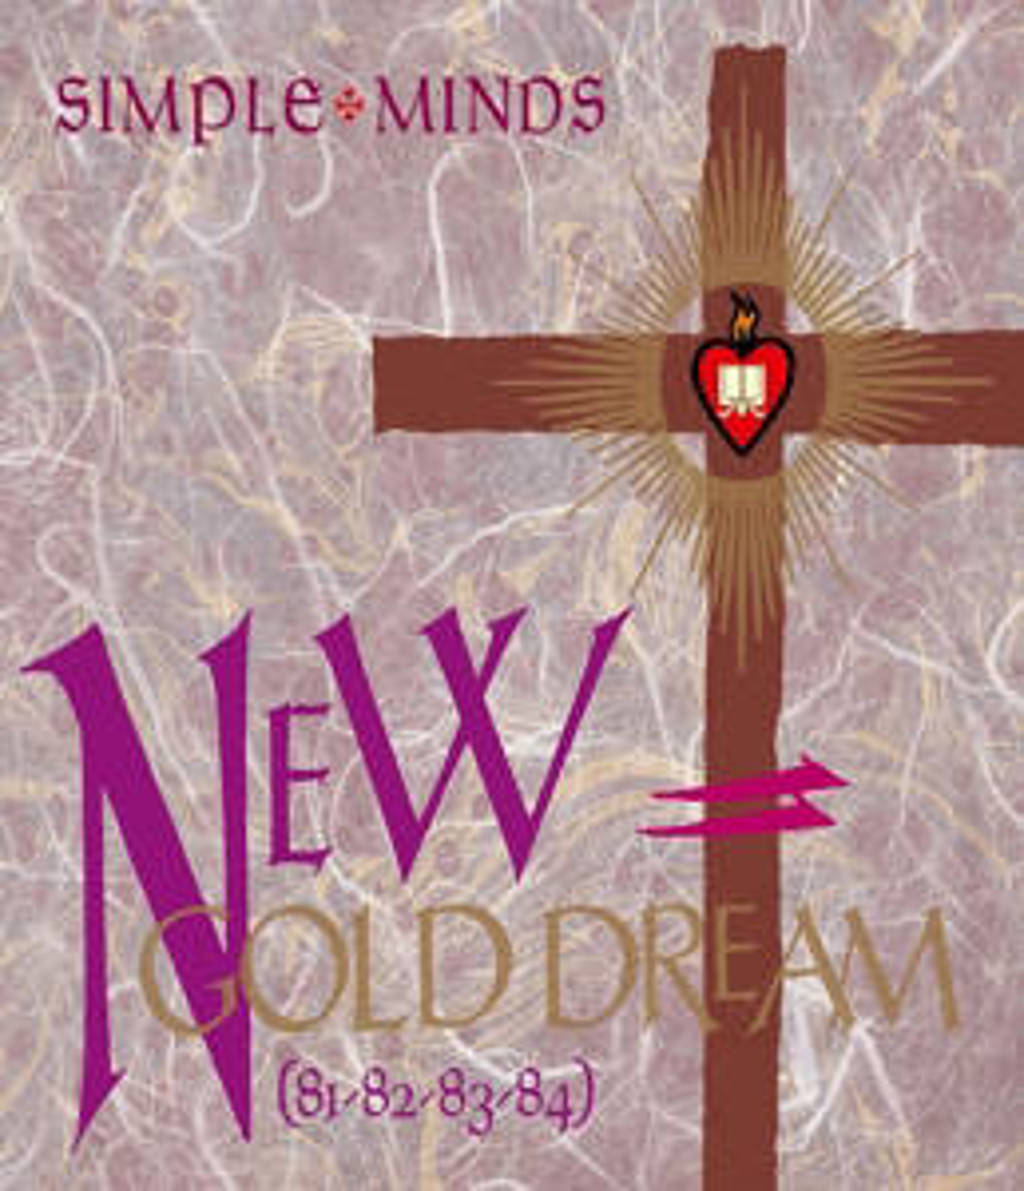 Simple Minds - New Gold Dream (81/82/83/84) (Blu-ray)